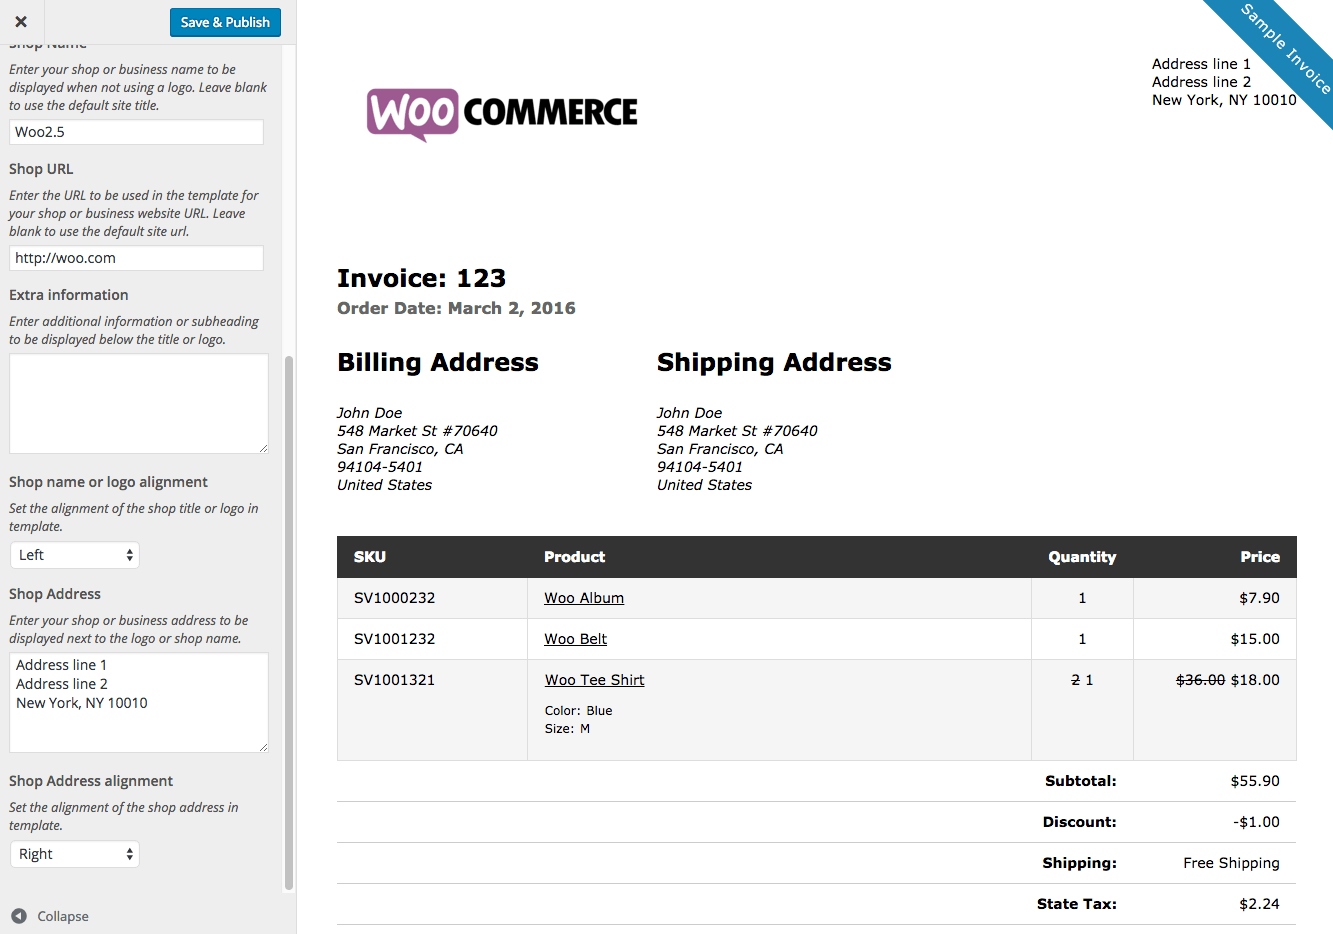 Angkajituus  Ravishing Woocommerce Print Invoices Amp Packing Lists  Woocommerce Docs With Fetching Woocommerce Print Invoices  Packing Lists Customizer With Amusing Cost To Process An Invoice Also Invoice Is In Addition Personal Invoice Sample And E Invoicing Tnt As Well As Define Purchase Invoice Additionally Meaning Of Pro Forma Invoice From Docswoocommercecom With Angkajituus  Fetching Woocommerce Print Invoices Amp Packing Lists  Woocommerce Docs With Amusing Woocommerce Print Invoices  Packing Lists Customizer And Ravishing Cost To Process An Invoice Also Invoice Is In Addition Personal Invoice Sample From Docswoocommercecom